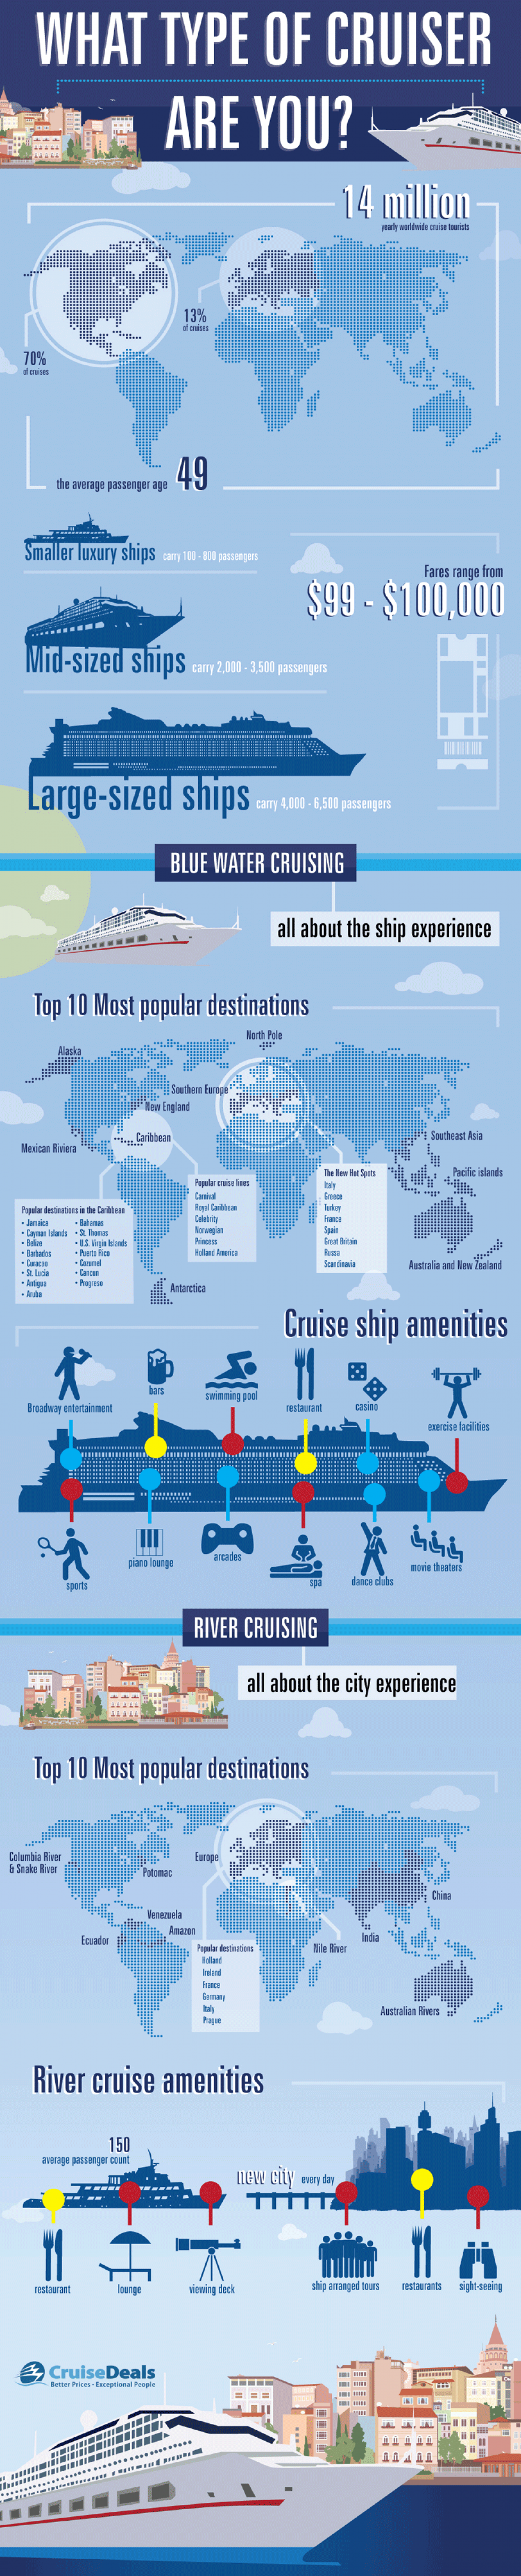 What Type of Cruiser Are You? Infographic